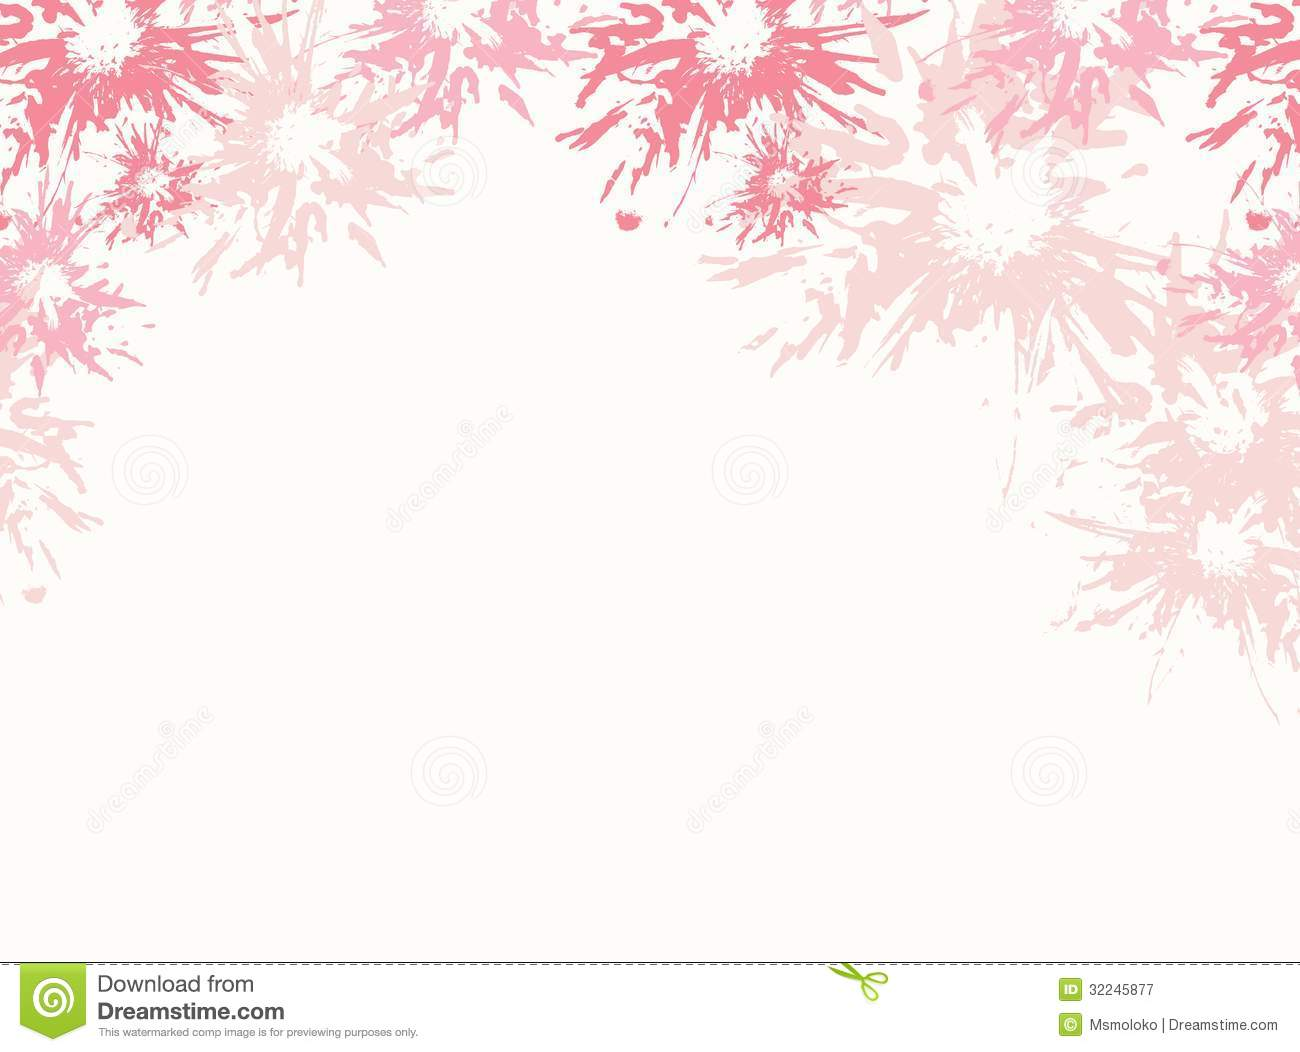 Floral background stock vector. Illustration of colorful ... Leaves Clipart